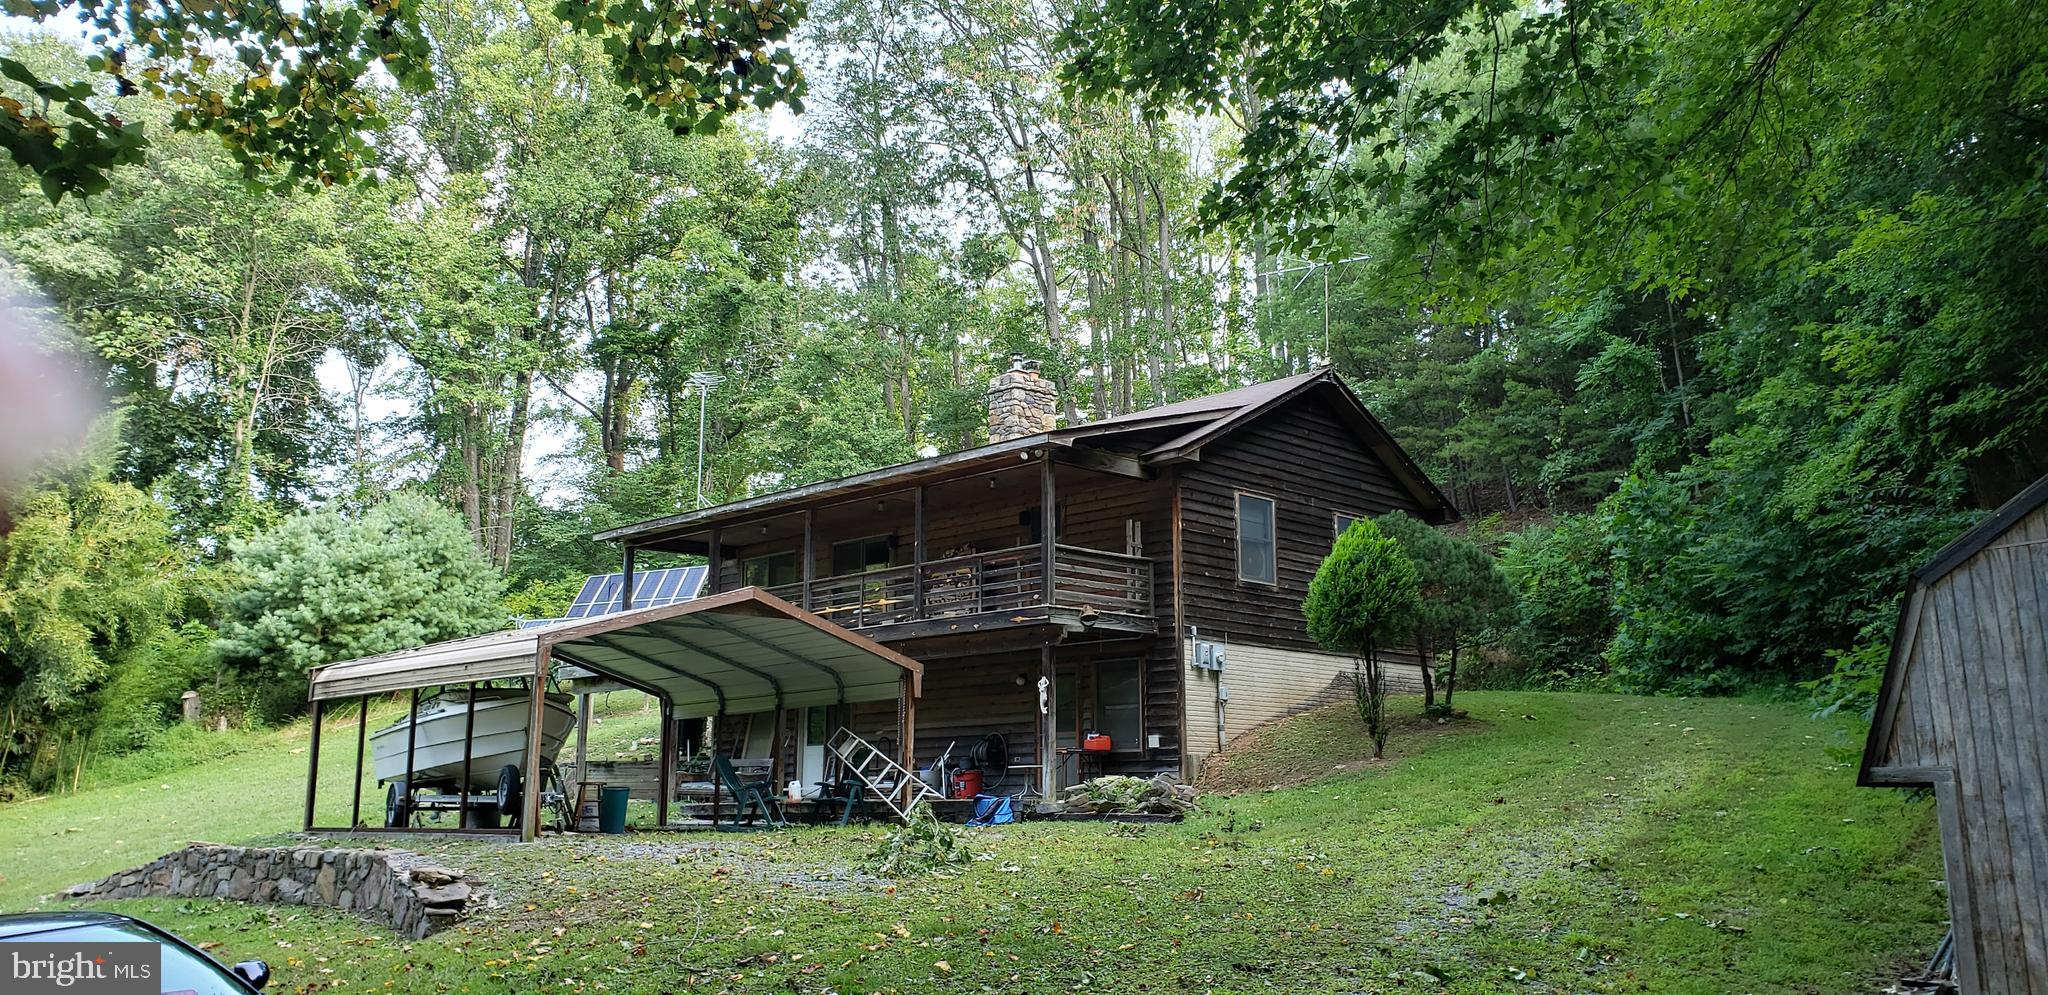 Wonderful energy efficient home with complete solar system that you can choose to live off the grid